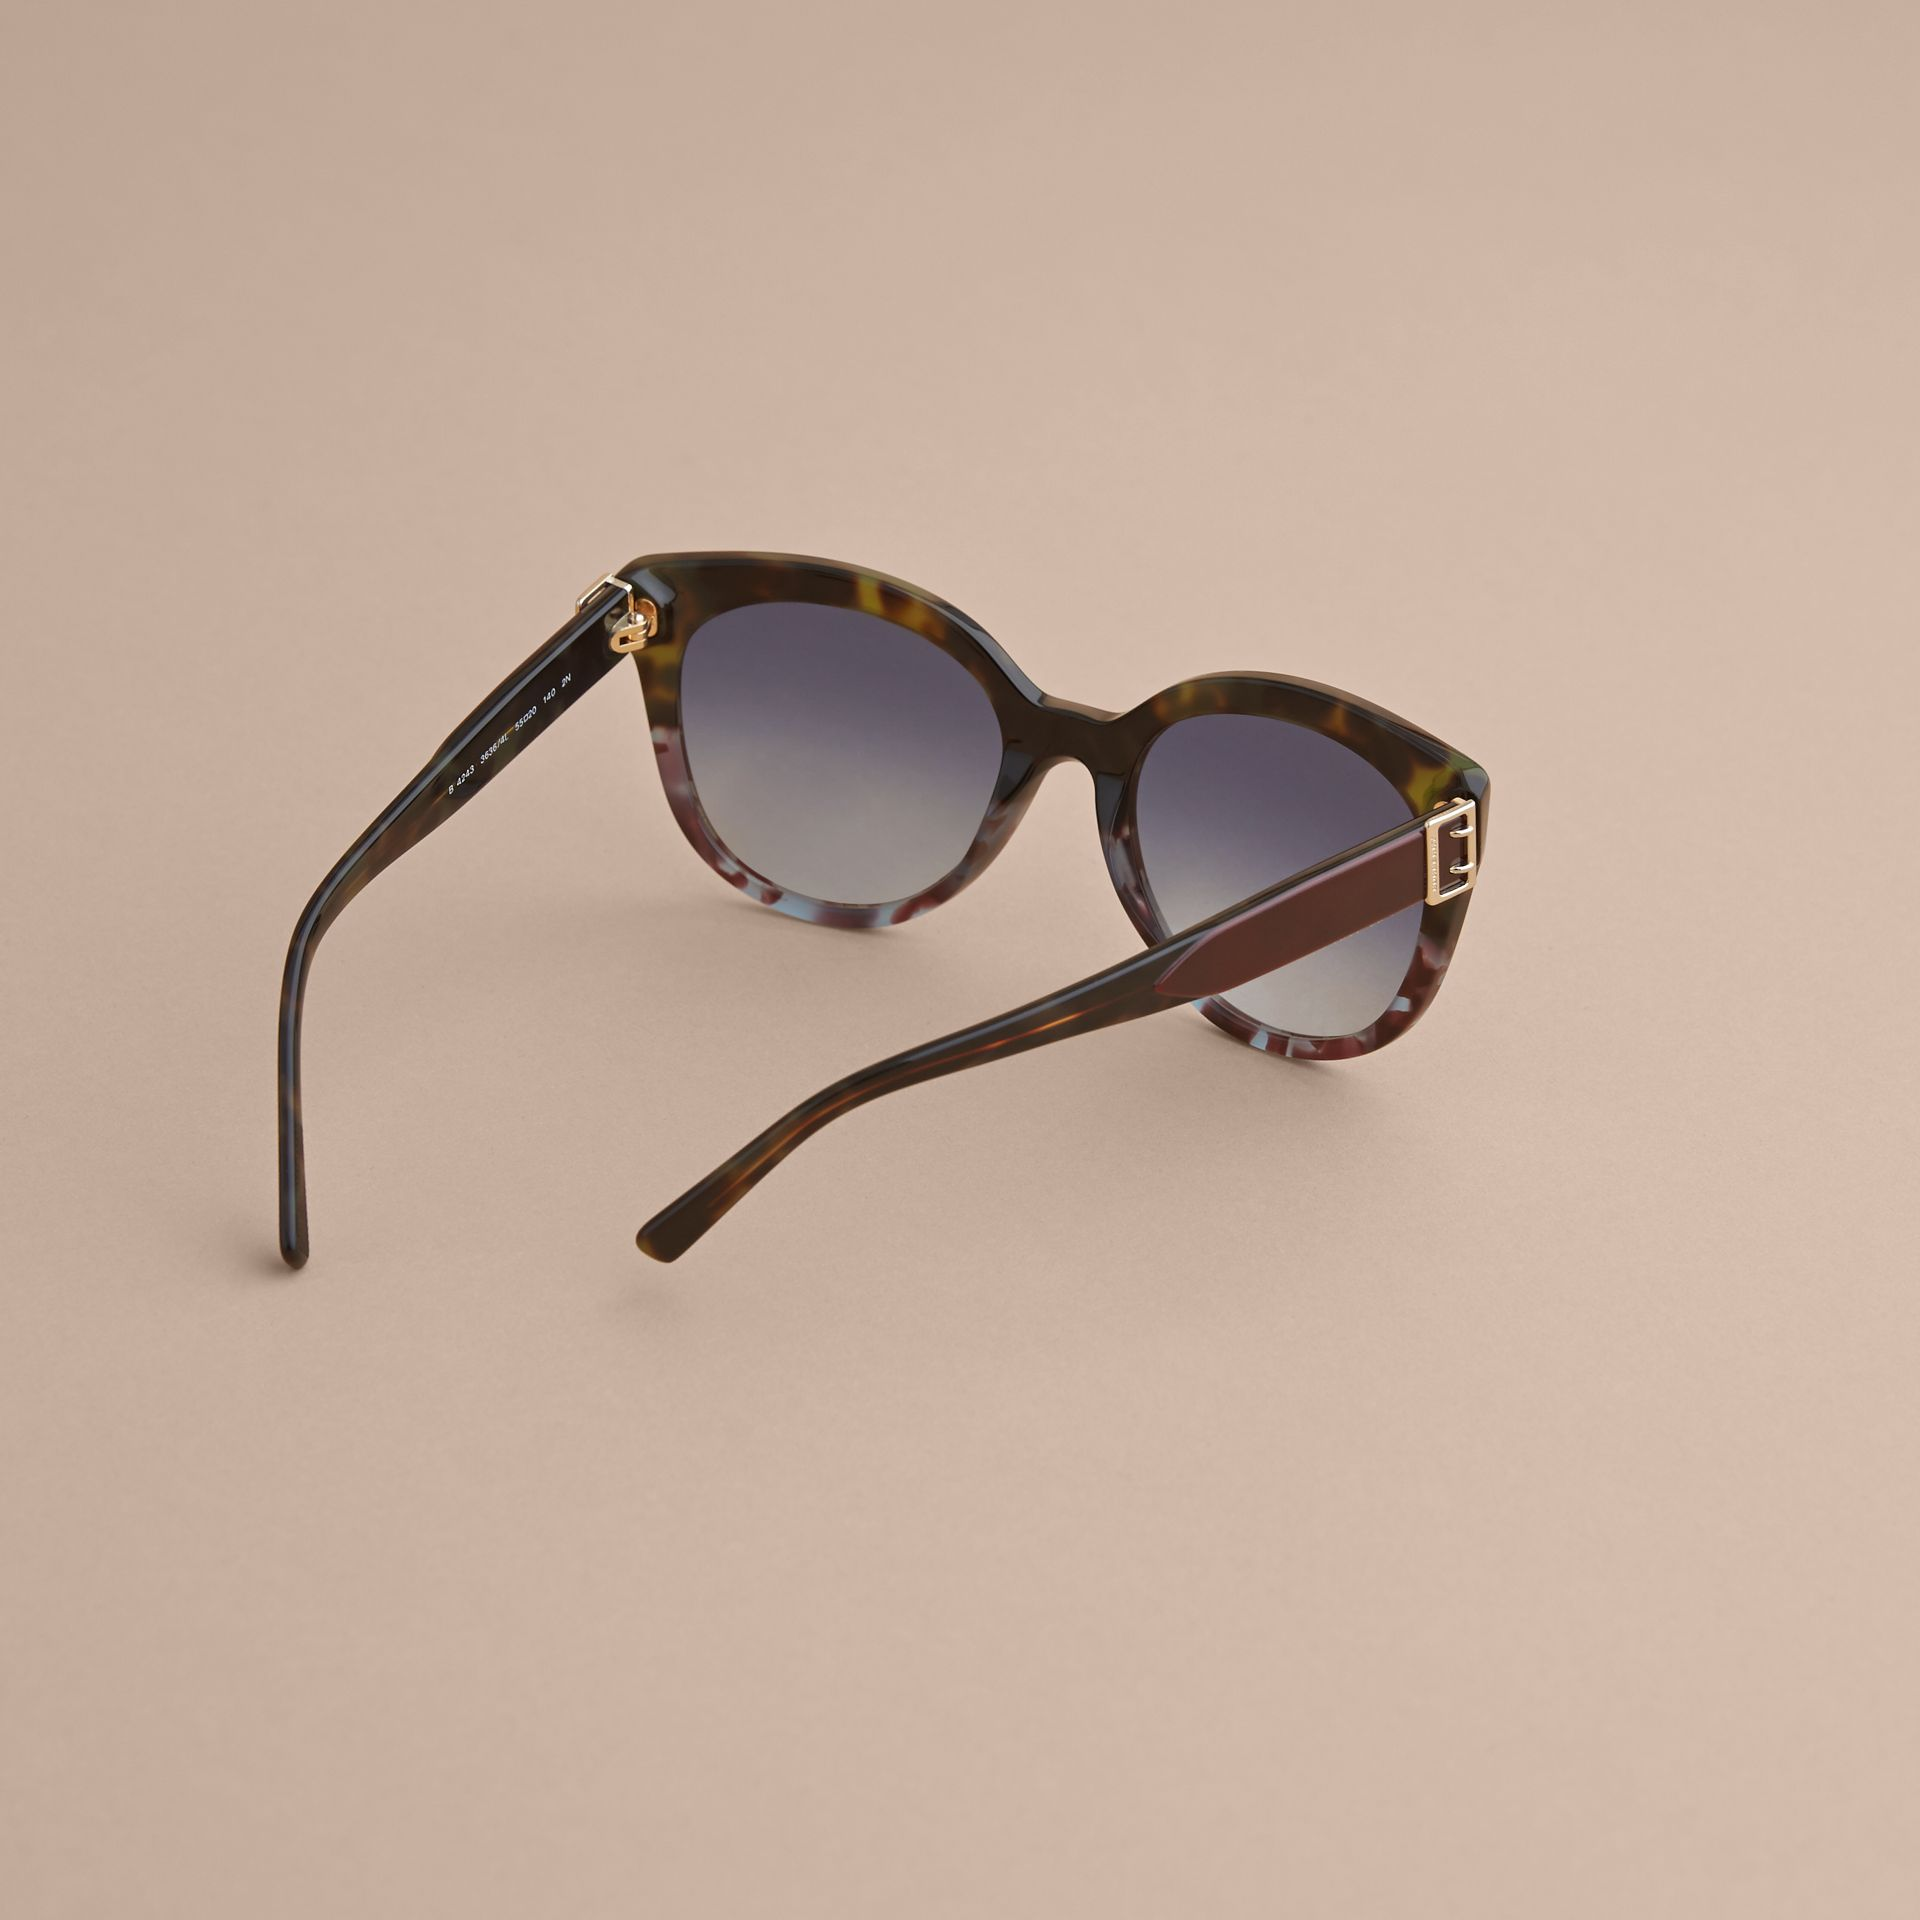 Buckle Detail Cat-eye Frame Sunglasses in Apple Green - Women | Burberry Singapore - gallery image 3